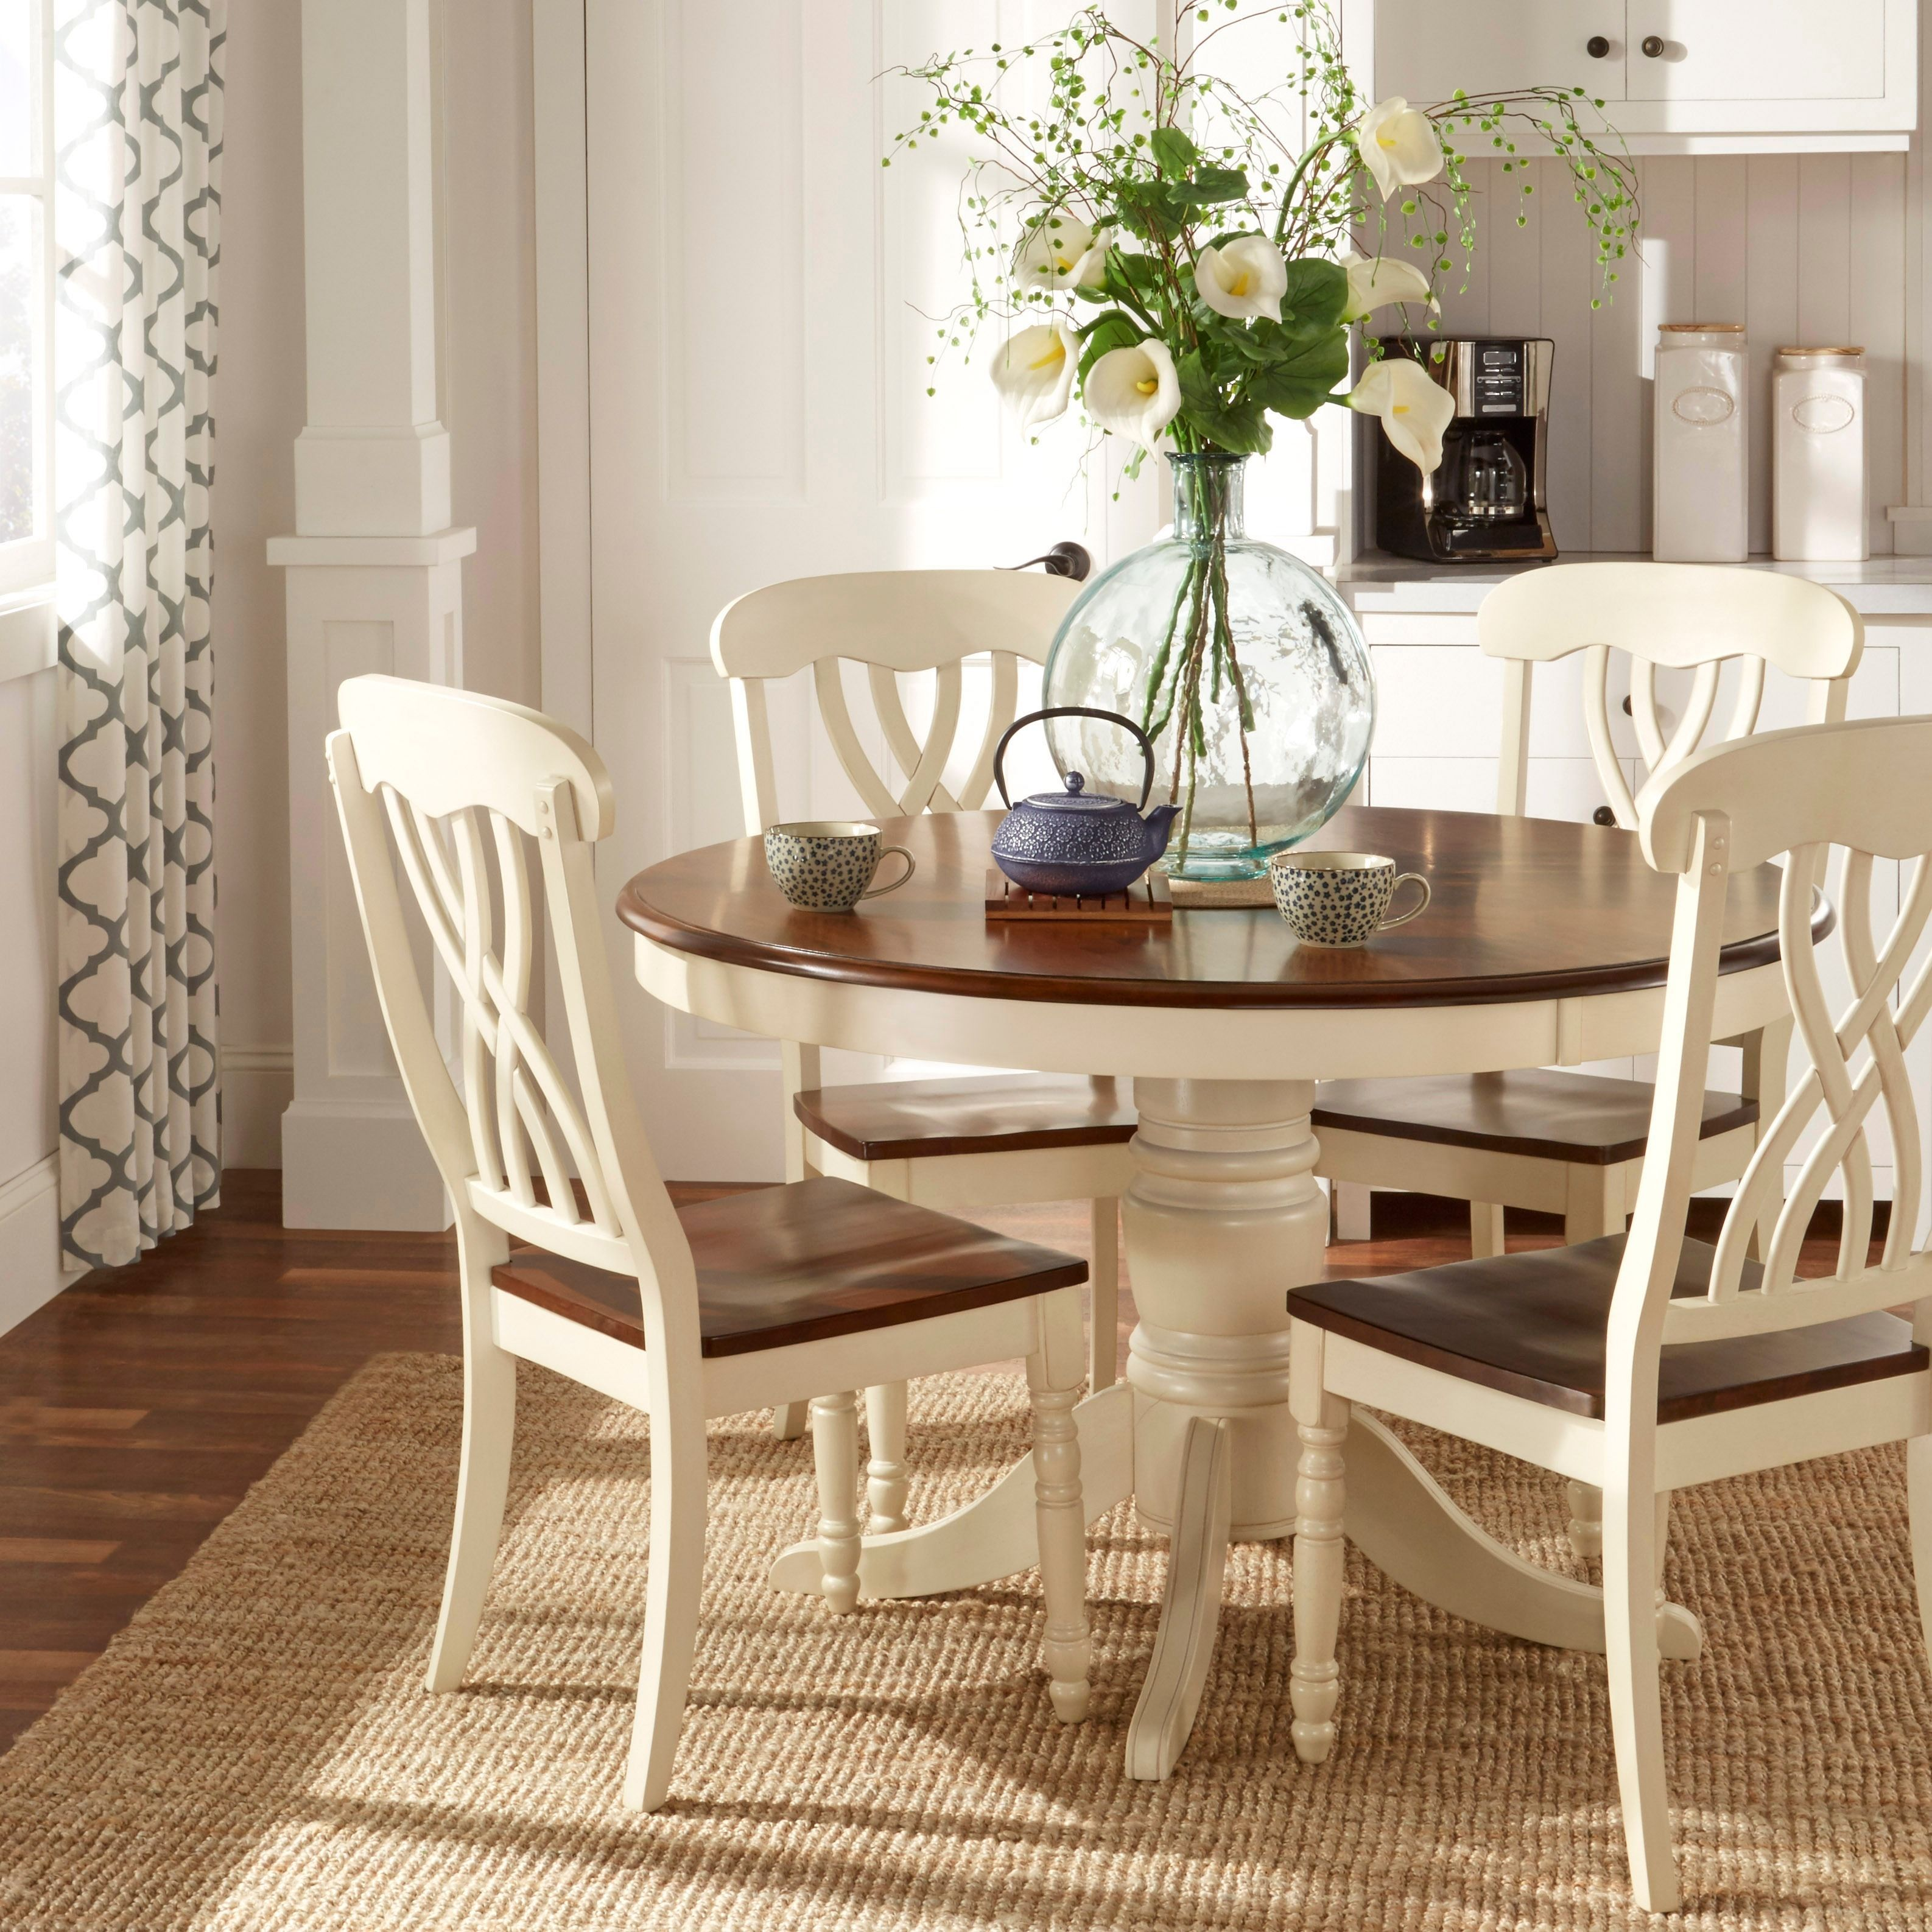 Mackenzie Country Style Two Tone Dining Chairs Set Of 2 By Inspire Q Classic With Images Kitchen Table Settings Dining Room Bar Dining Room Table